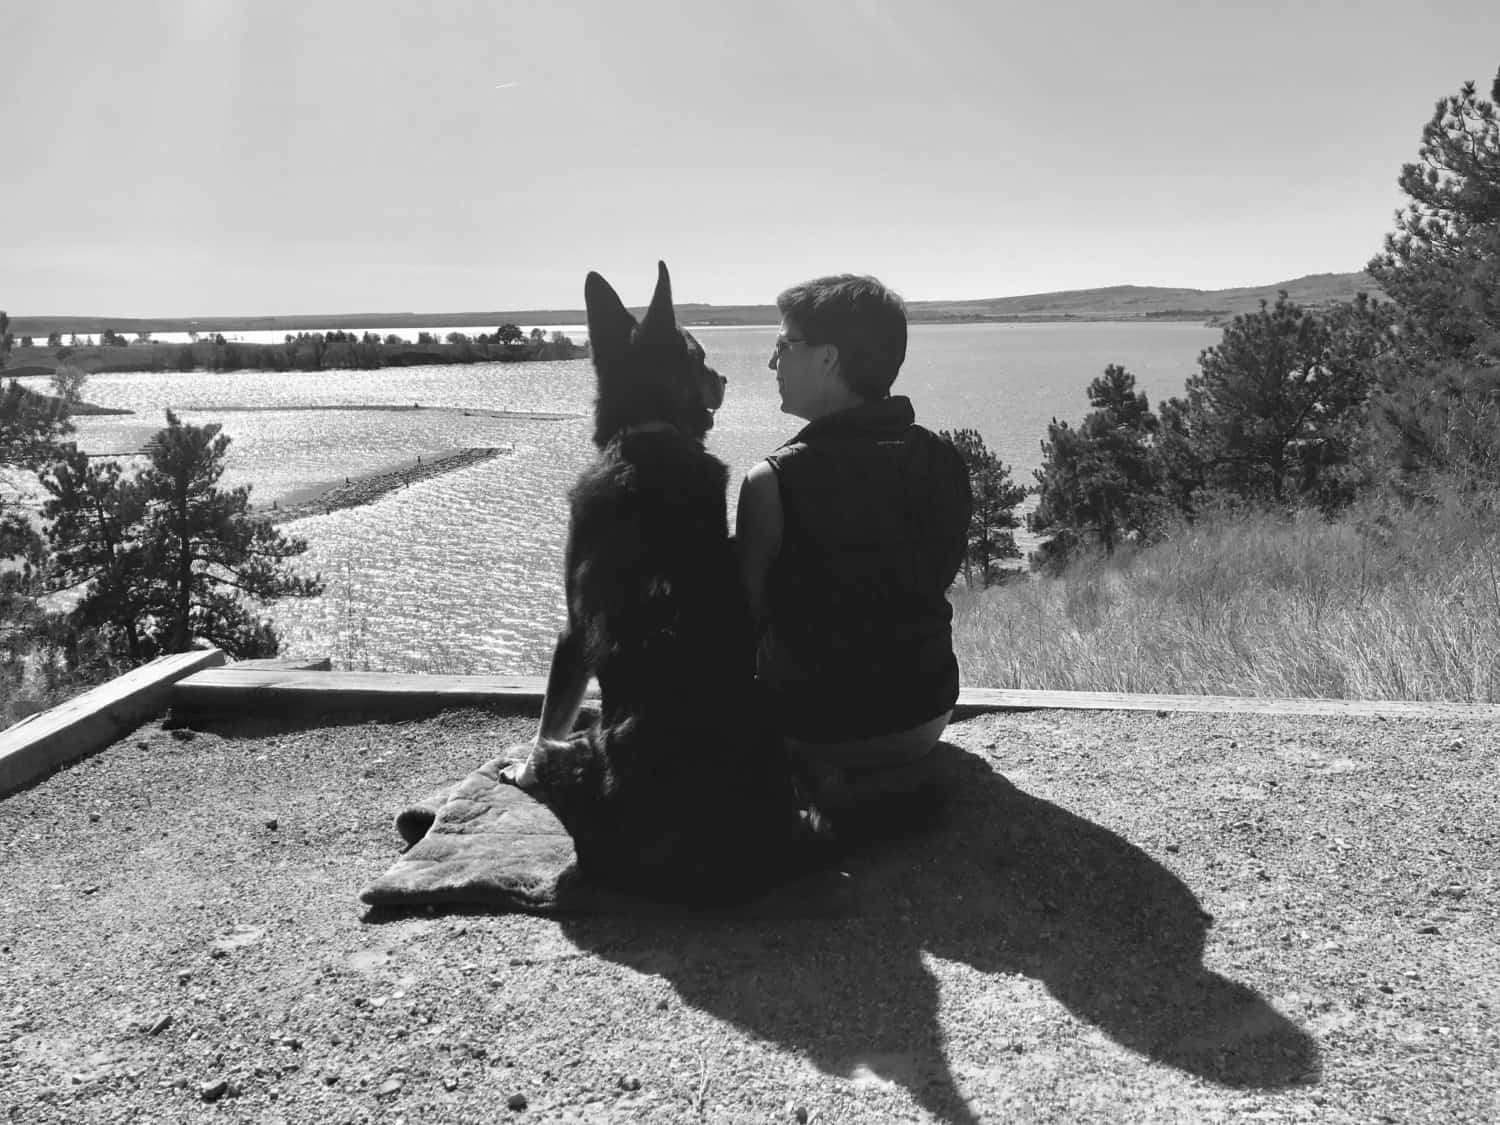 Black and white photo of a German Shepherd Dog and a woman smiling at each other overlooking a lake